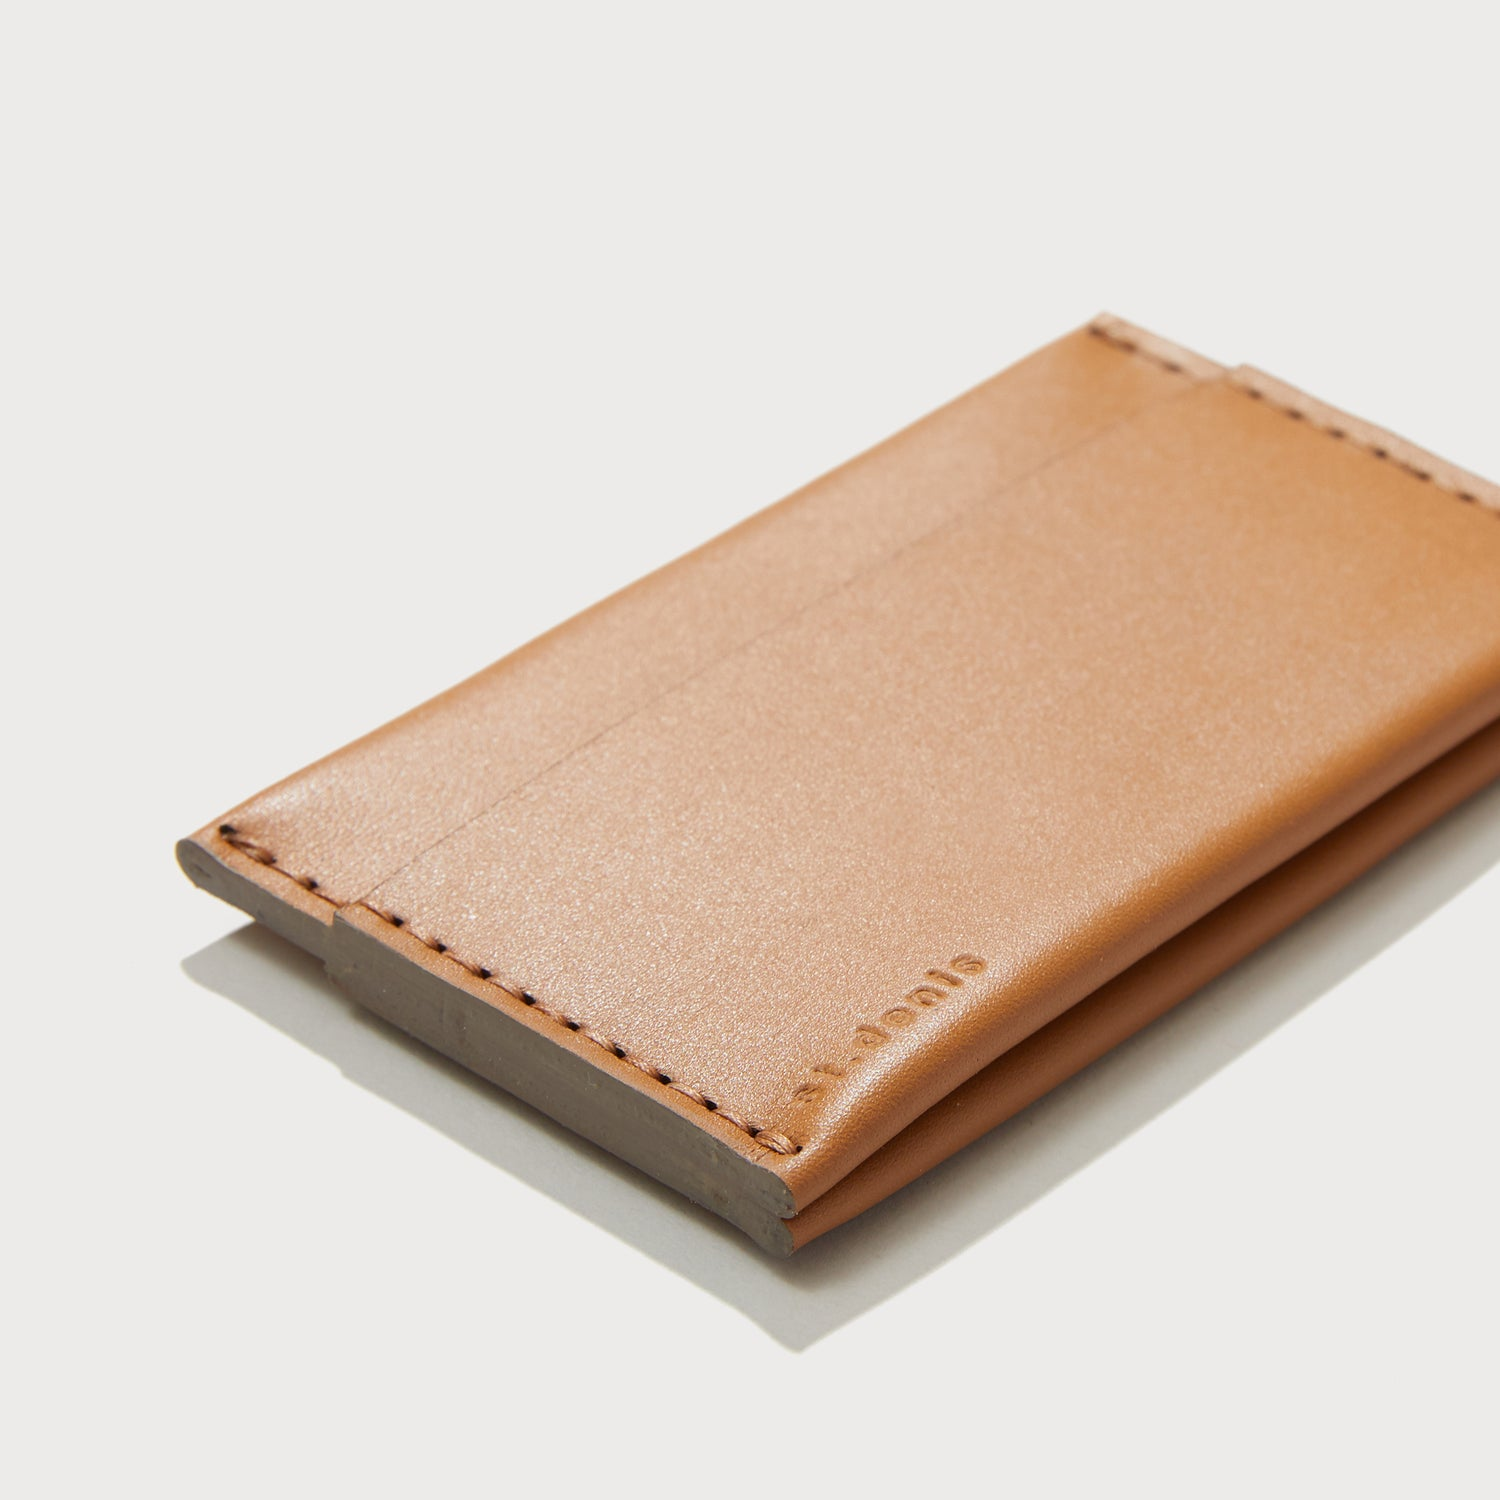 Sold out<br>Porte-cartes triple Couleur cognac